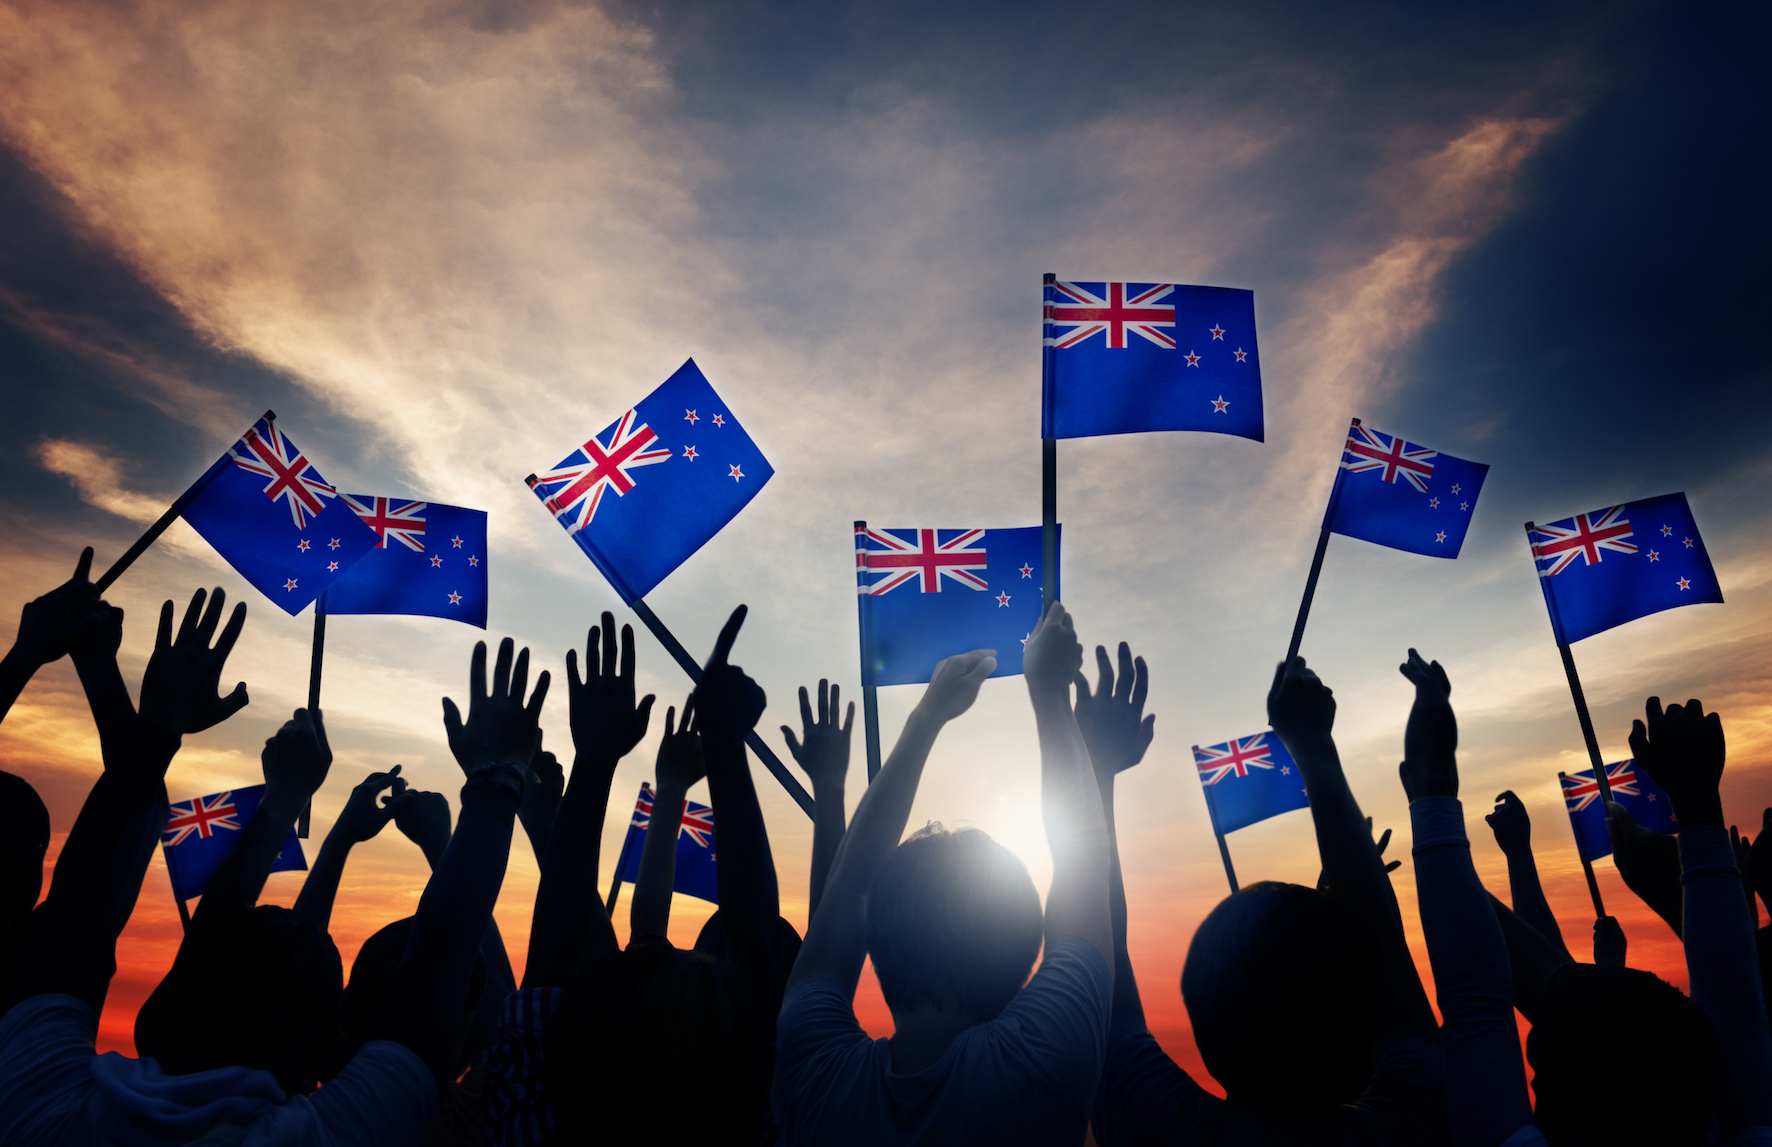 Silhouettes of People Holding Flag of New Zealand